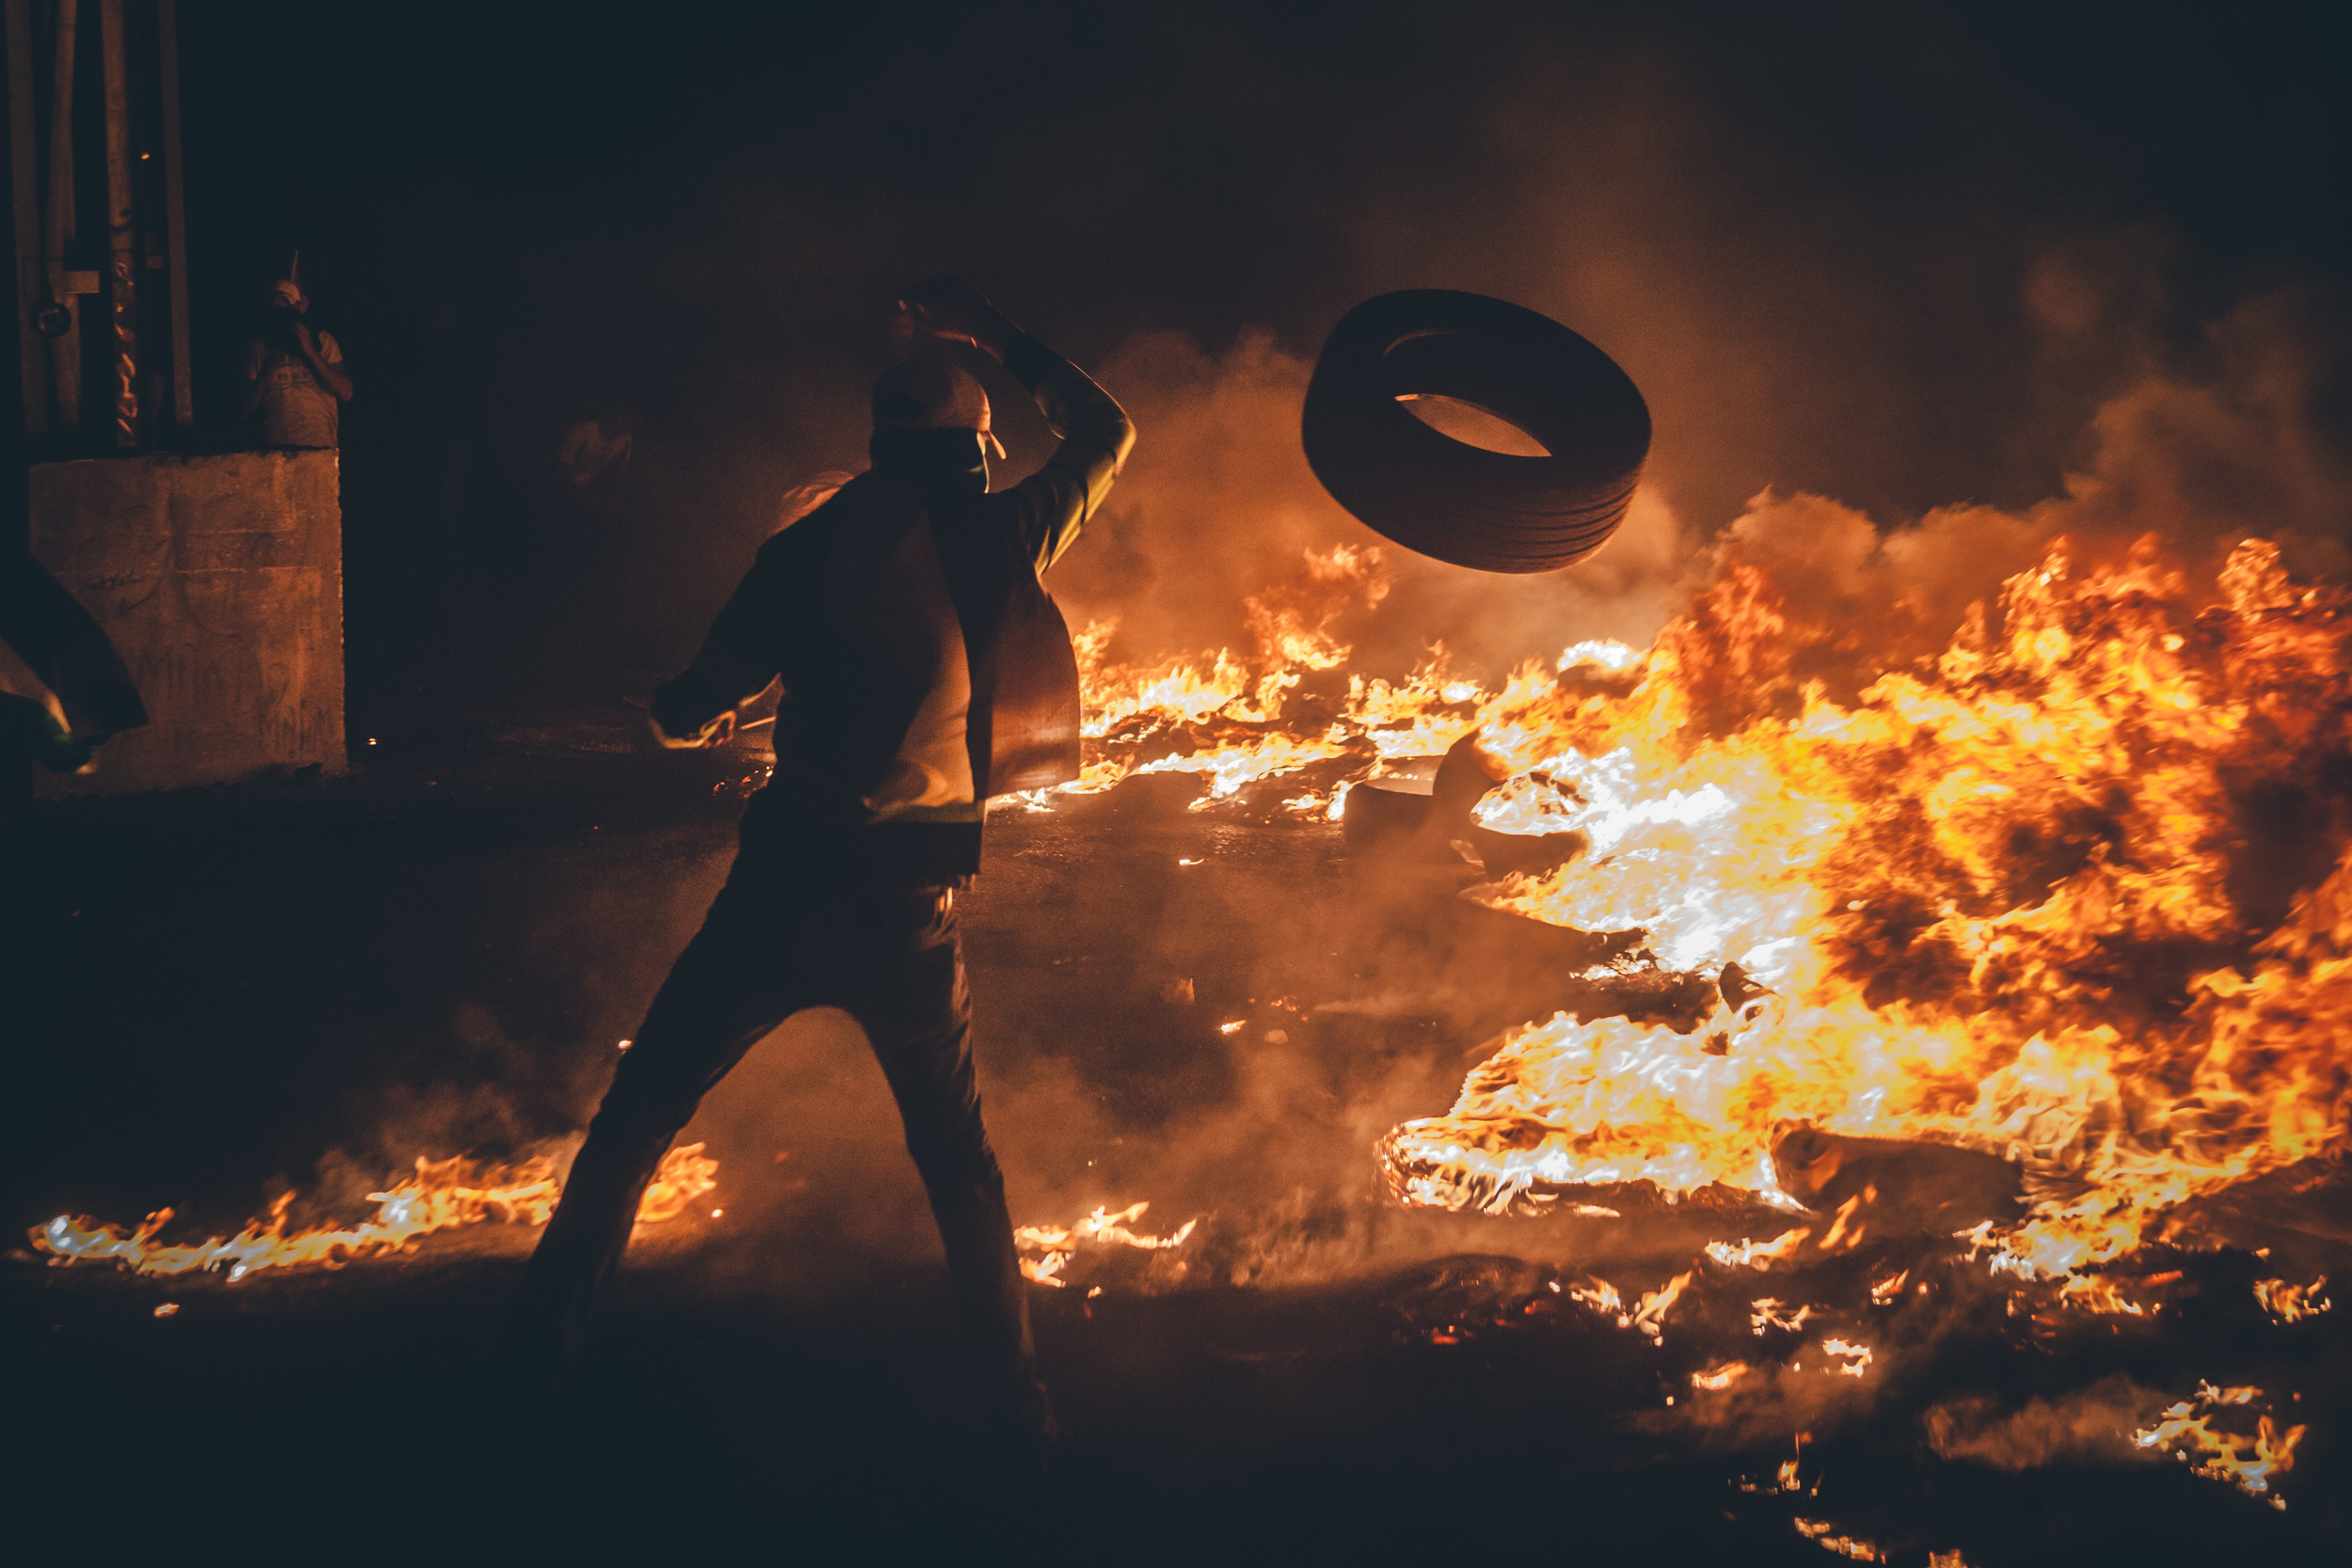 A Palestinian protestor throws a tire onto the flames. The smoke from the fire often creates a smoke screen between the protestors and the IDF, leaving visibility between the two side at times nonexistent.